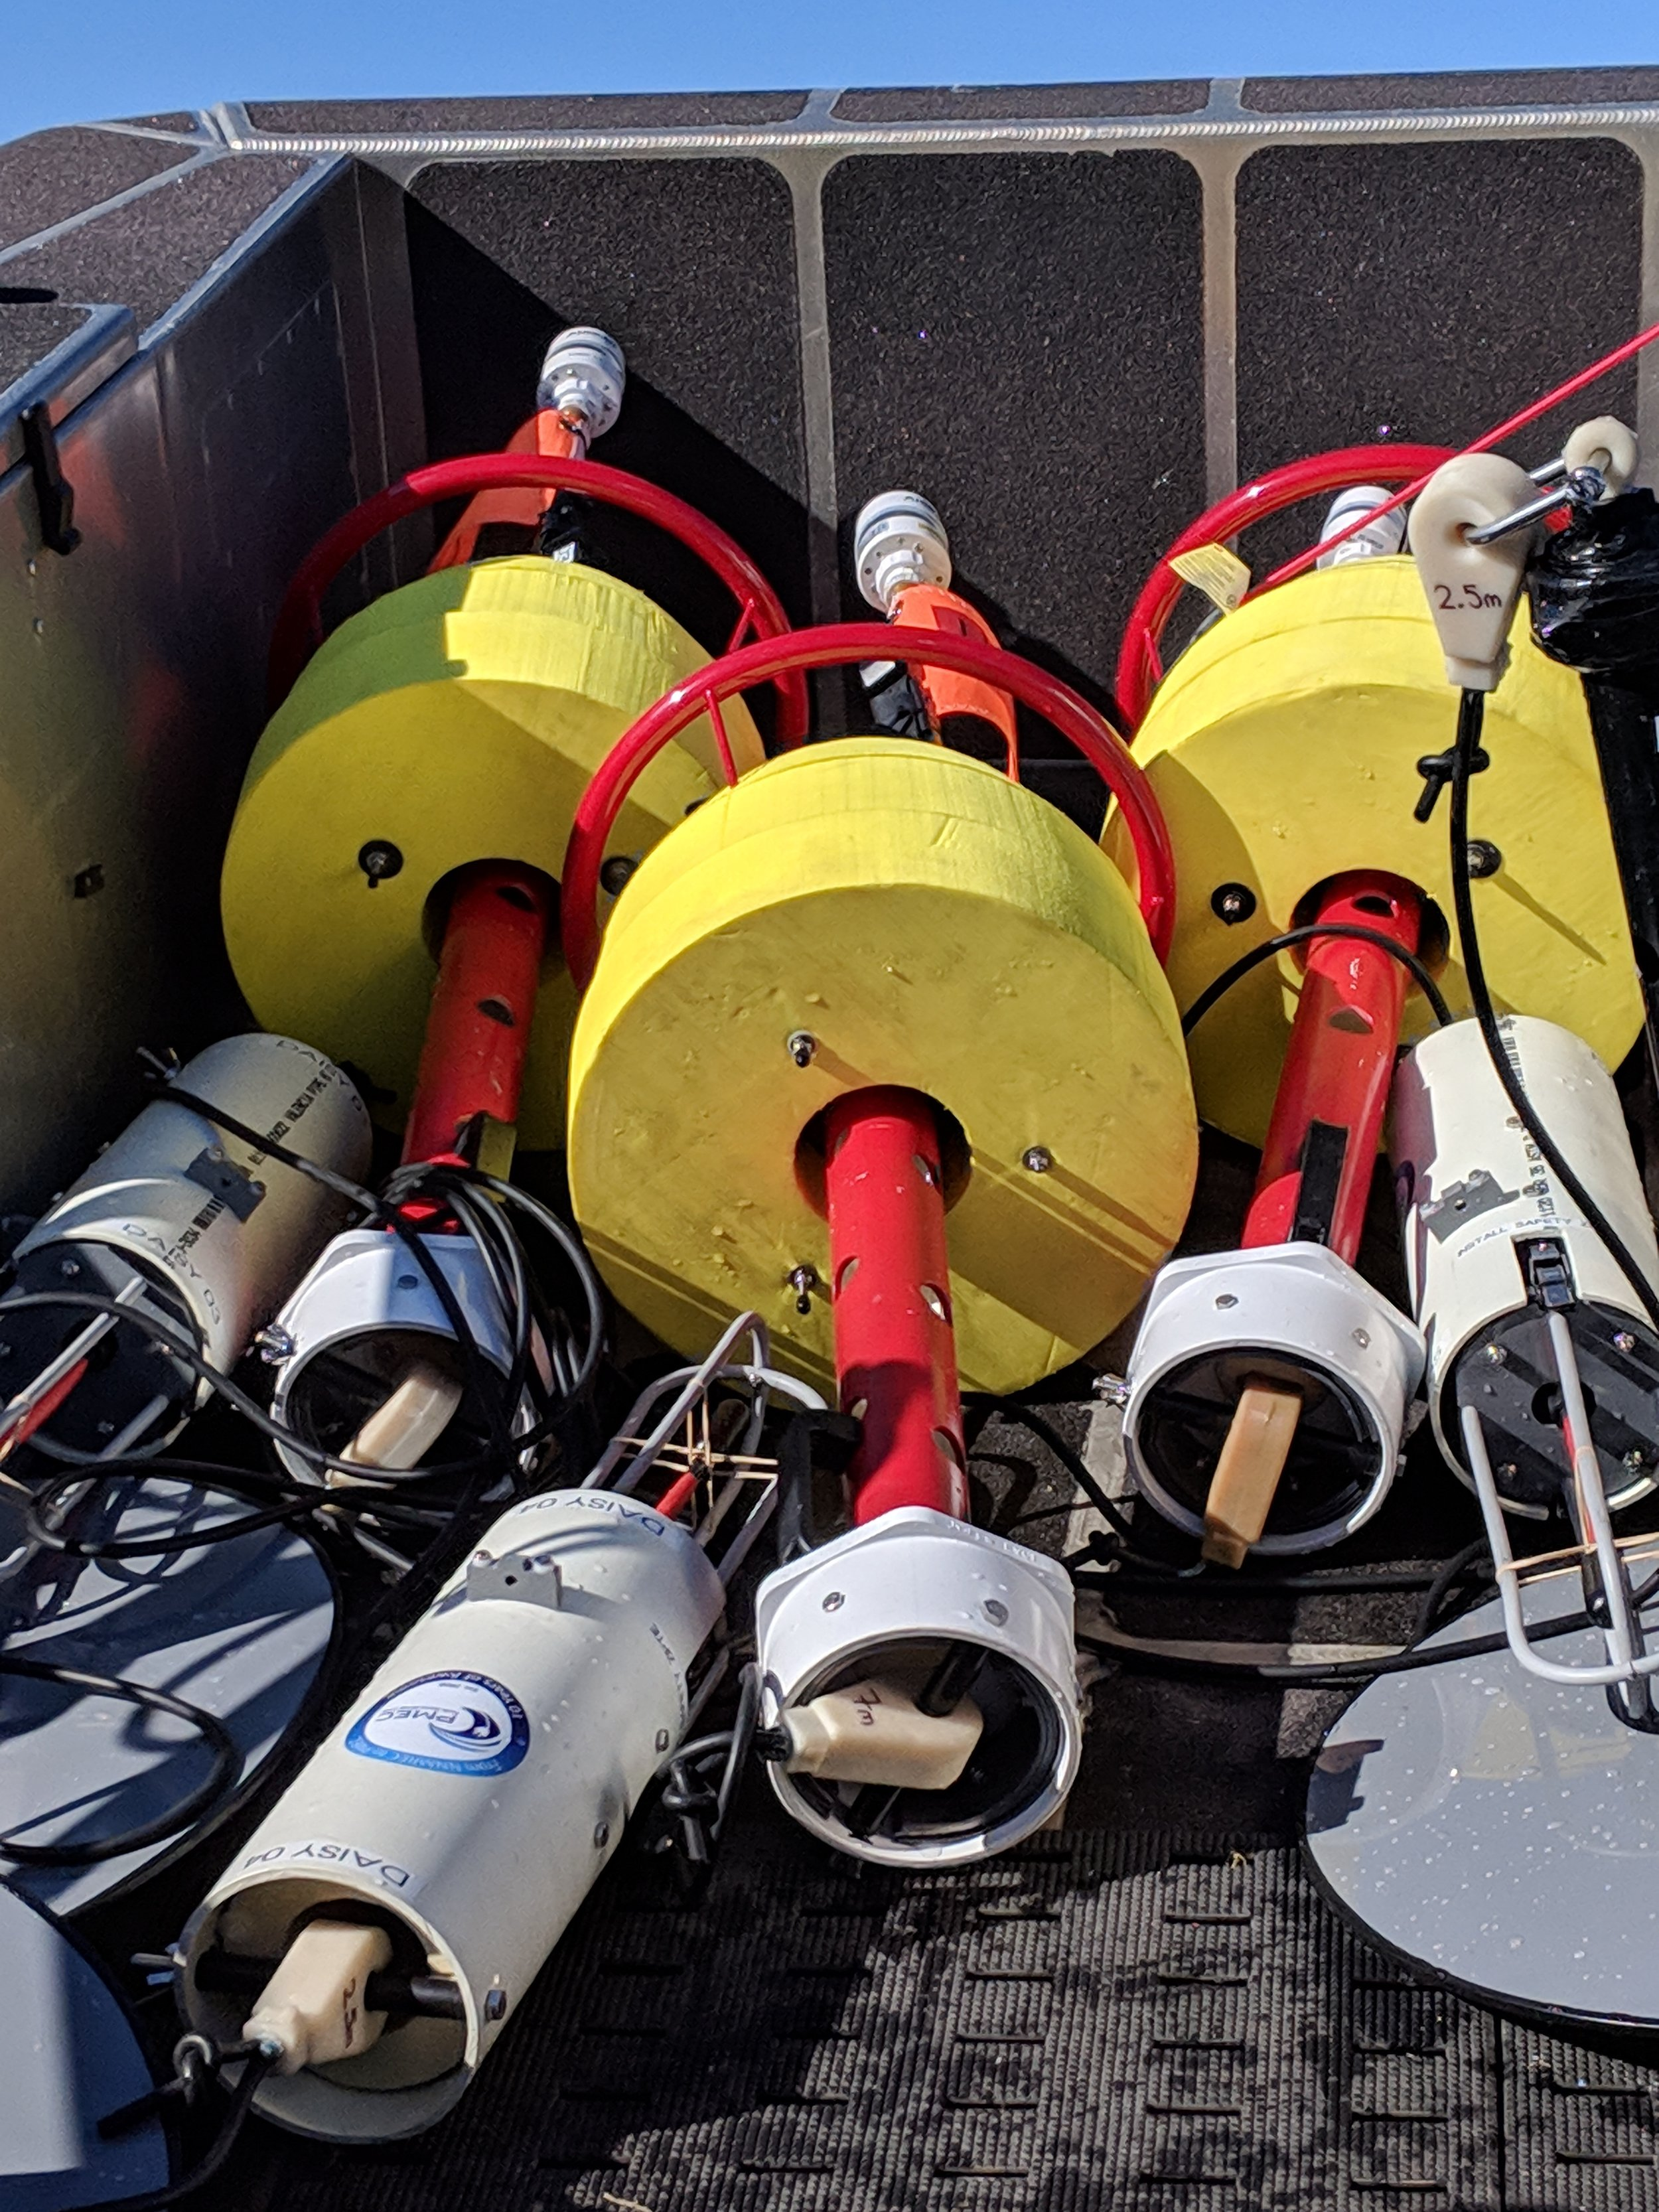 Prototype Drifting Acoustic Instrumentation SYstems (DAISYs) being tested at Pacific Northwest National Laboratory's    Marine Science Laboratory    in Sequim, WA.